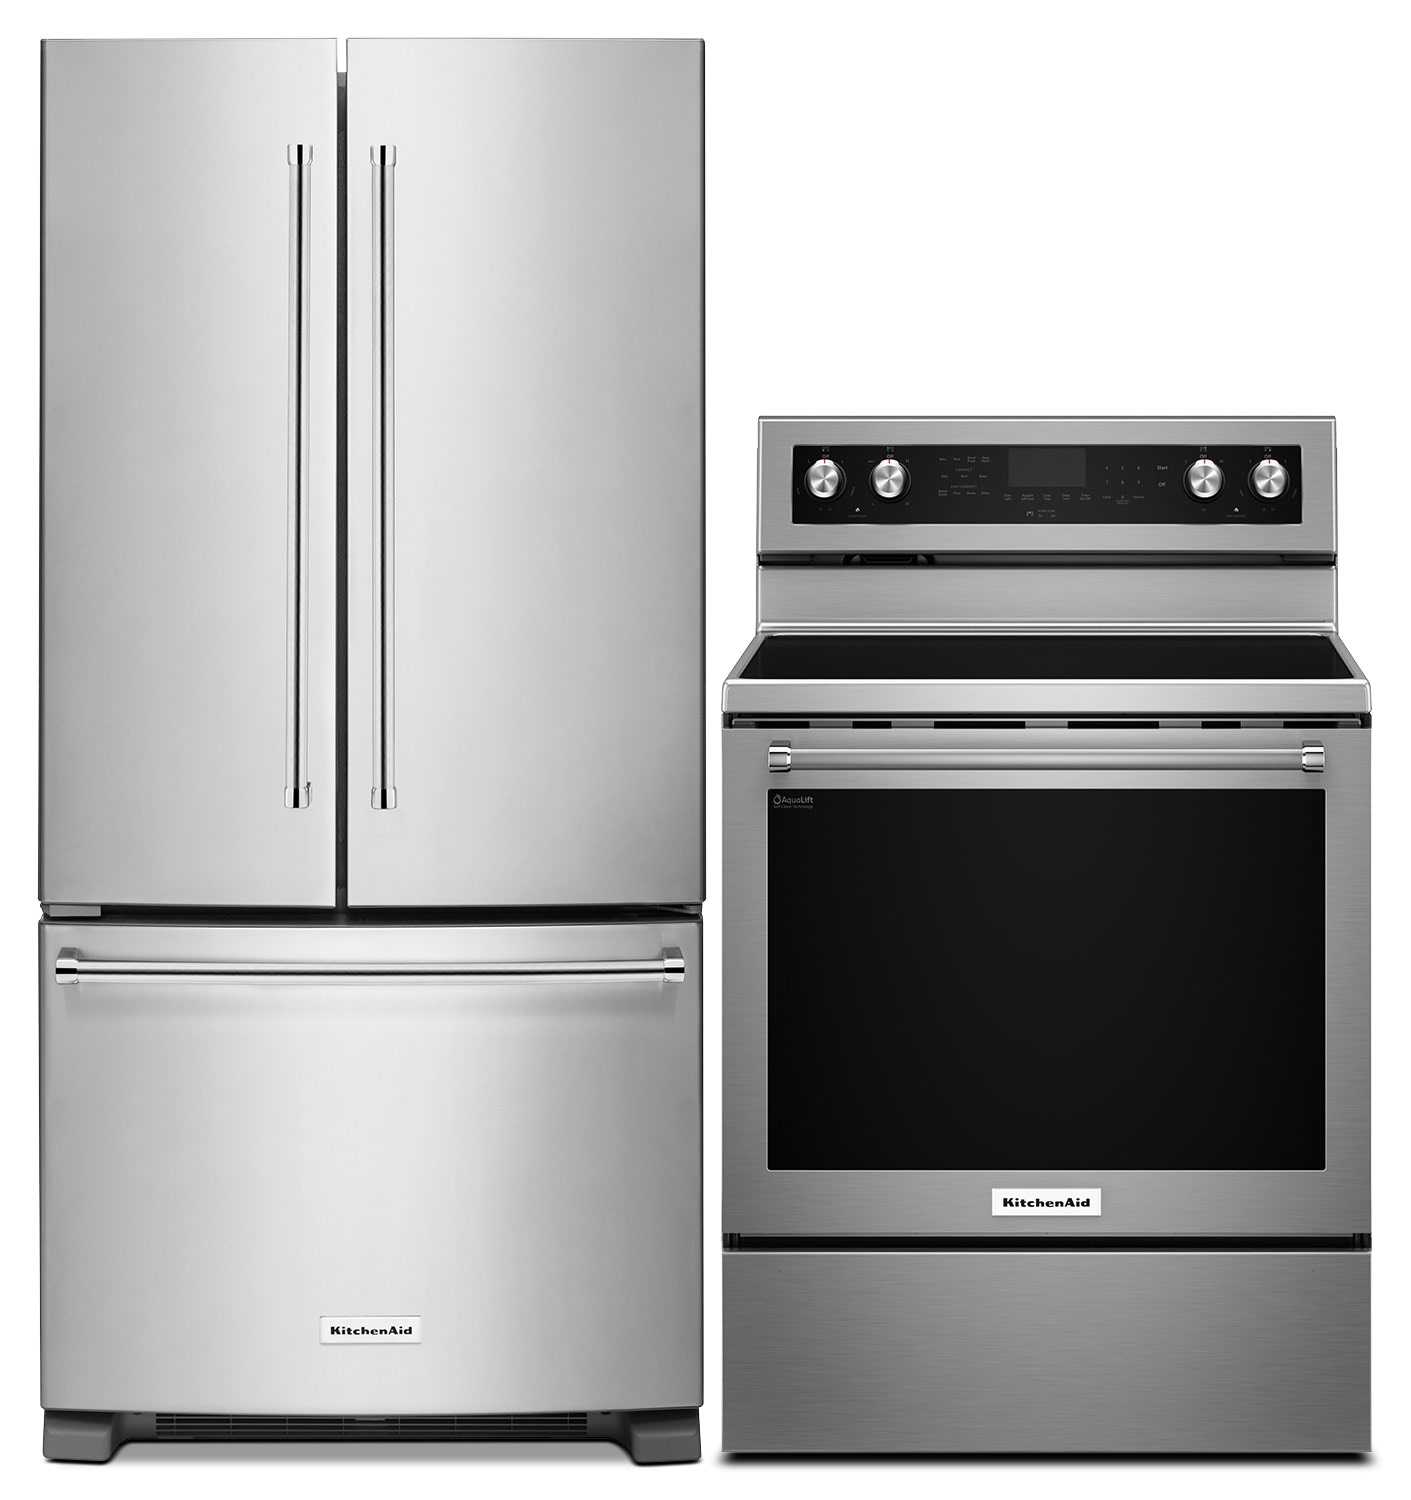 KitchenAid 19.7 Cu. Ft. French-Door Refrigerator and 6.4 Cu. Ft. Electric Range - Stainless Steel